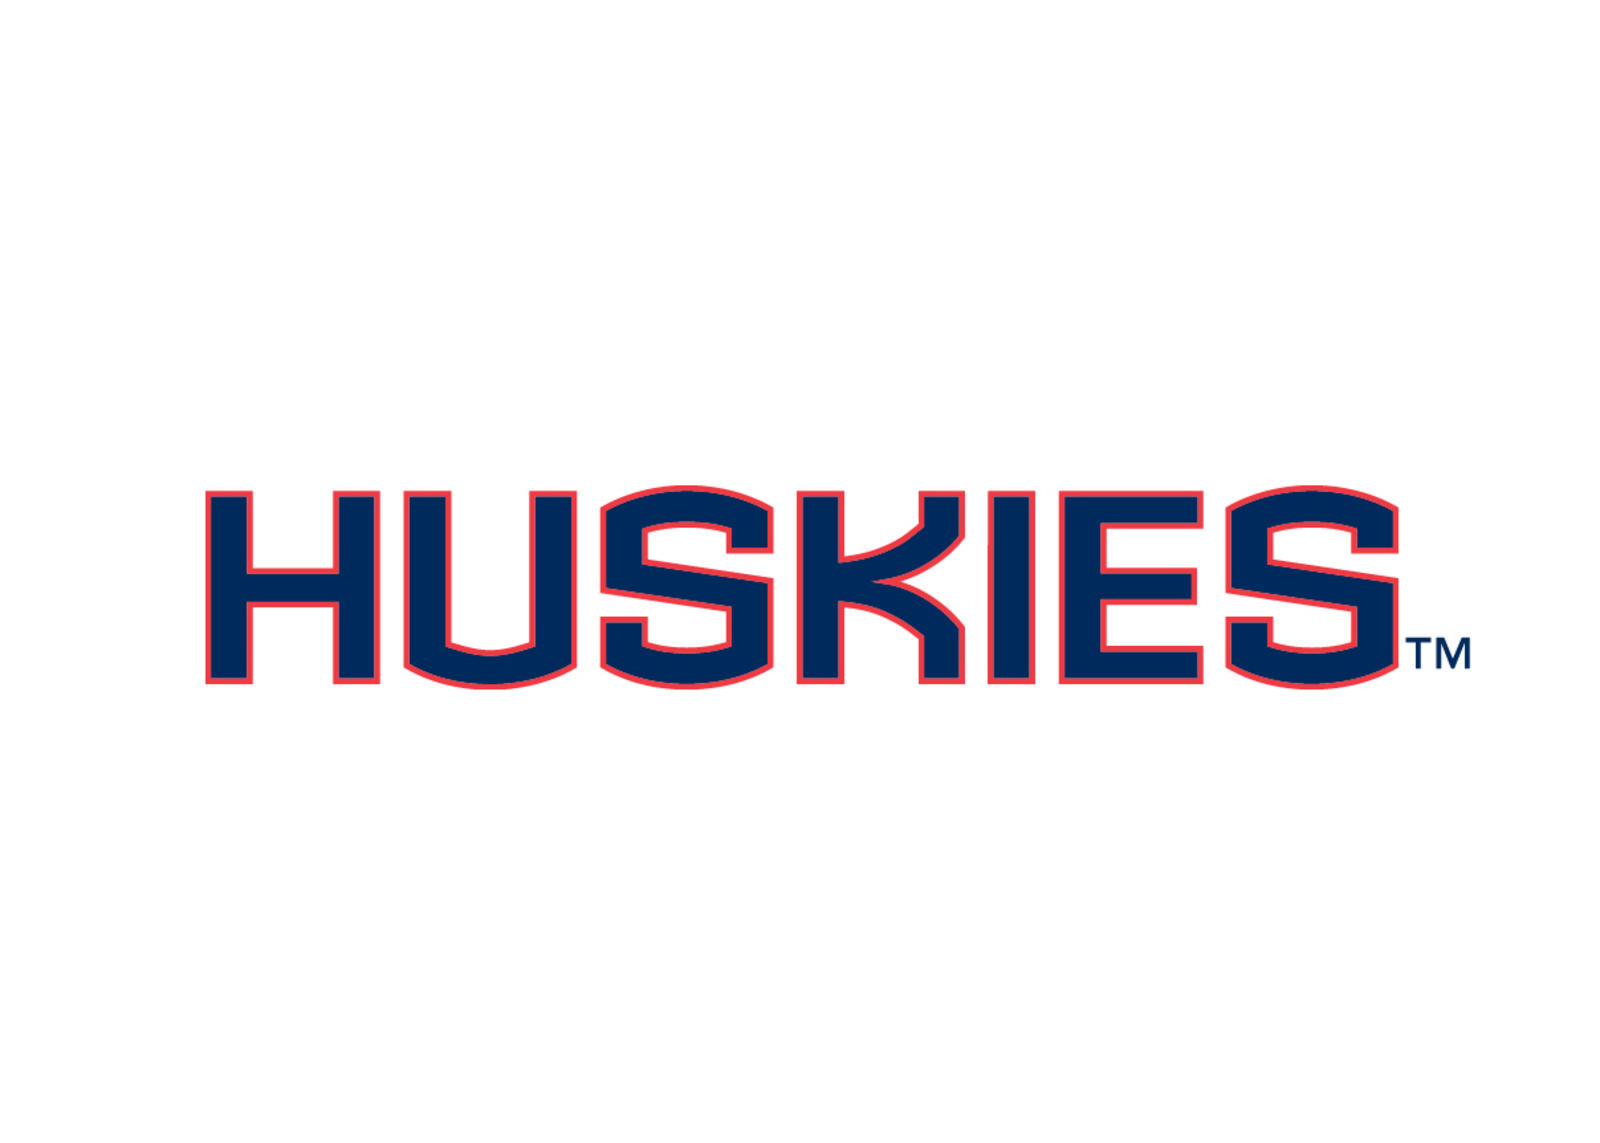 dc426e14 UConn Updates Visual Identity and new Uniforms for Huskies ... news.nike.com